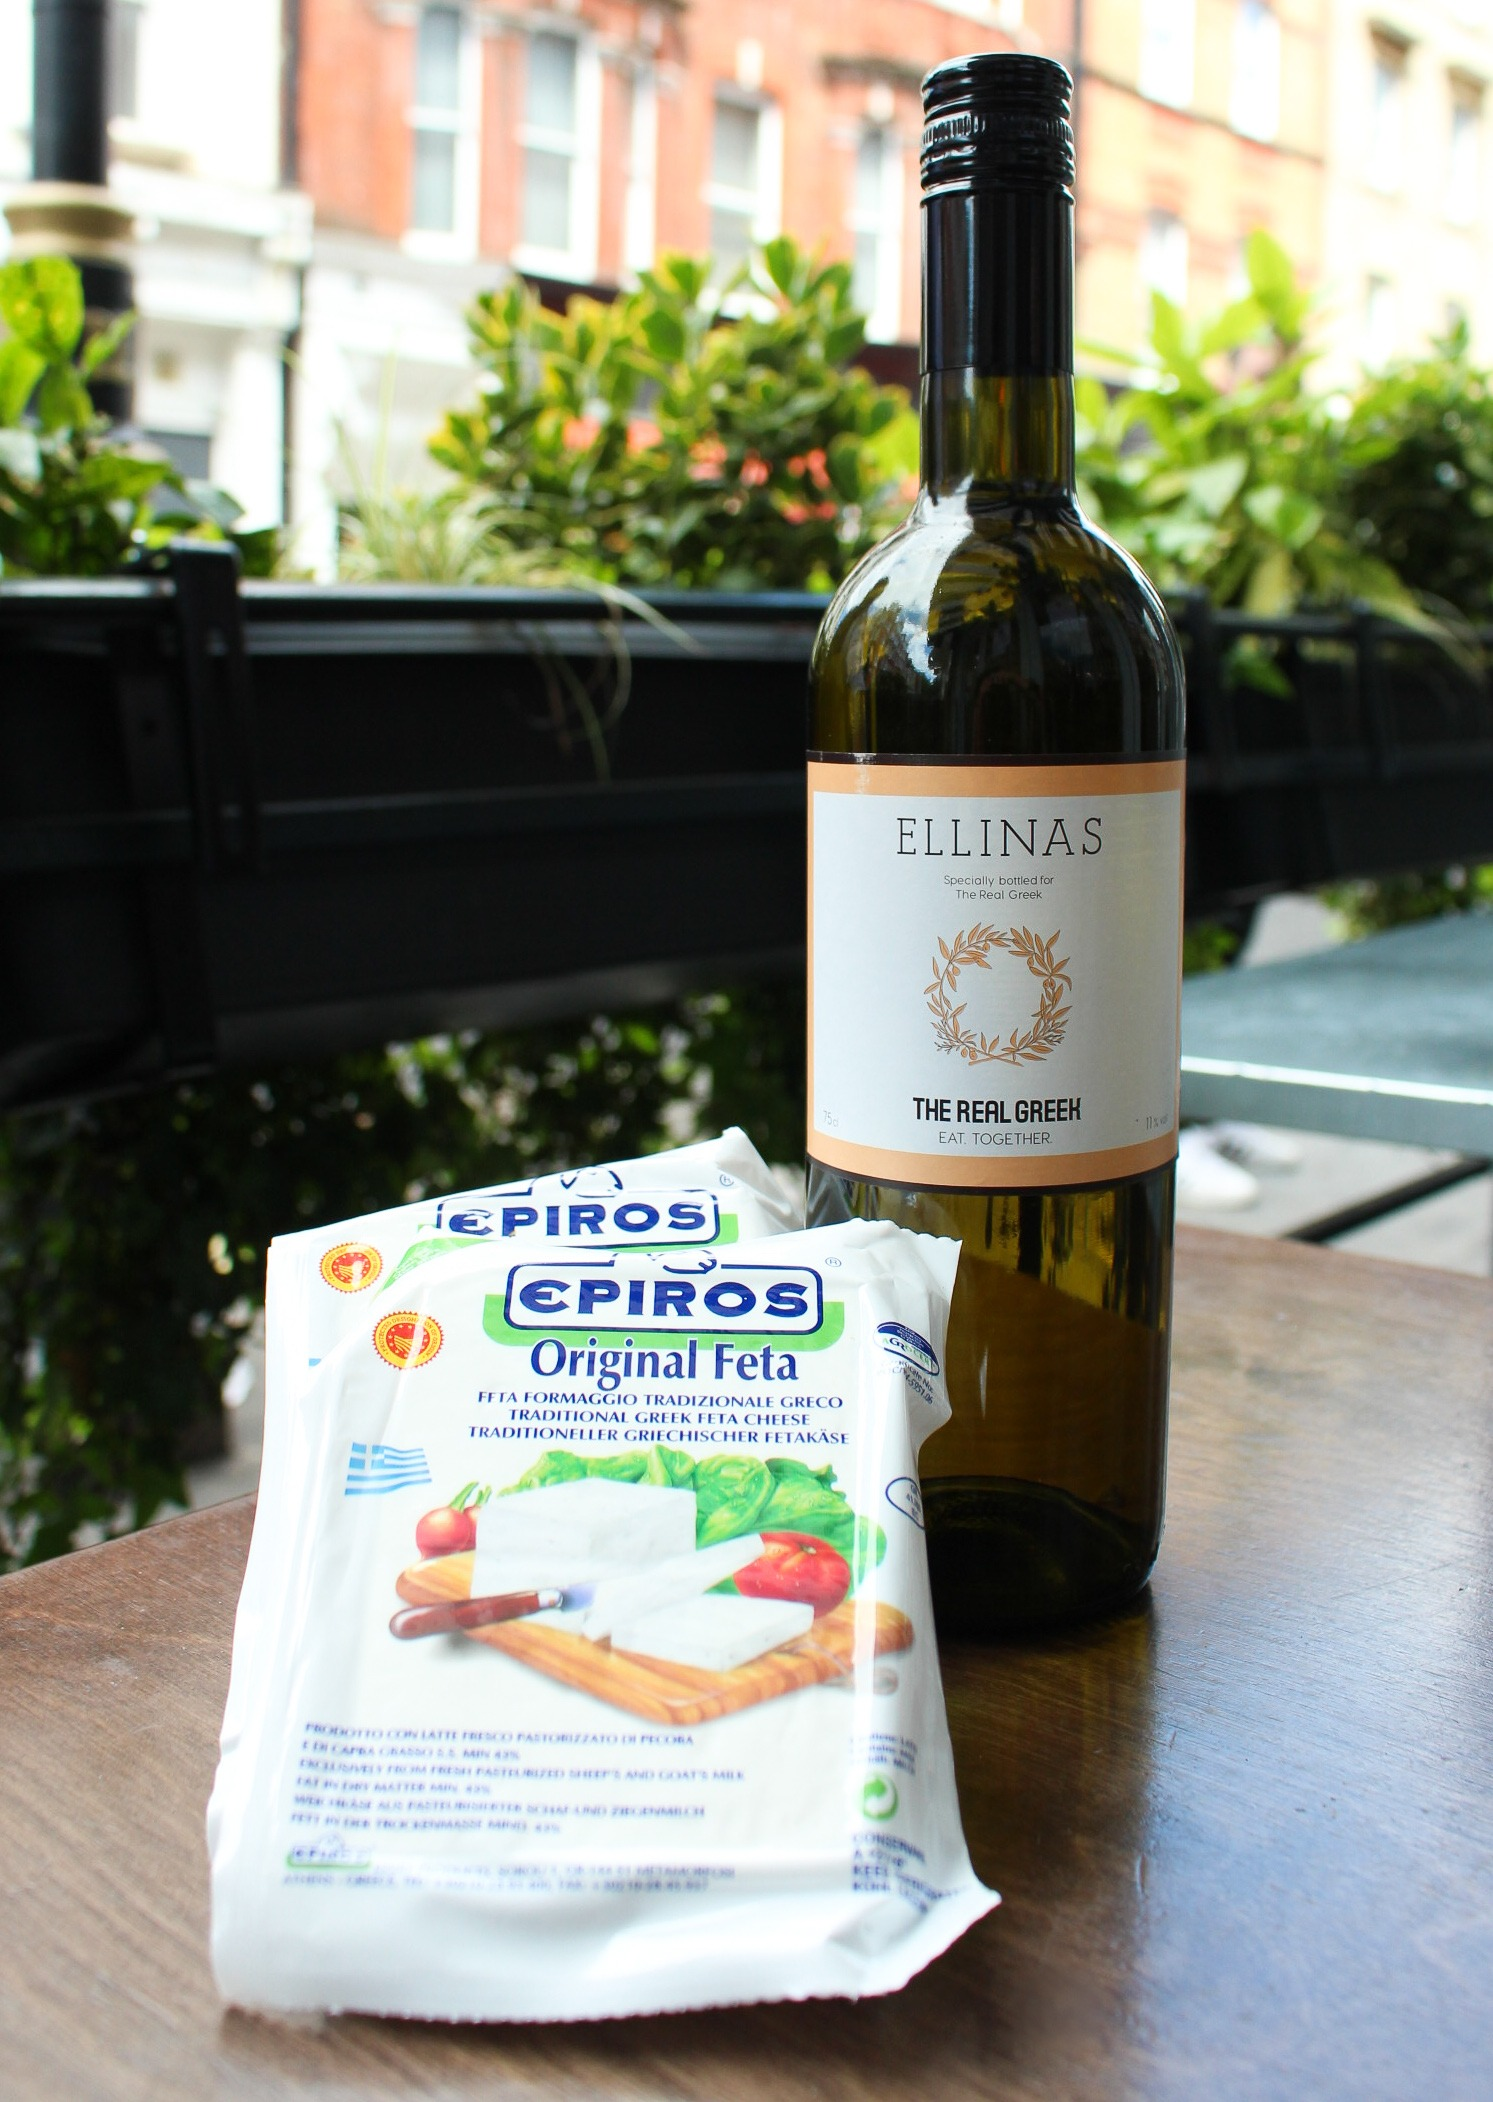 The Real Greek - Wine and Cheese - Ellinas